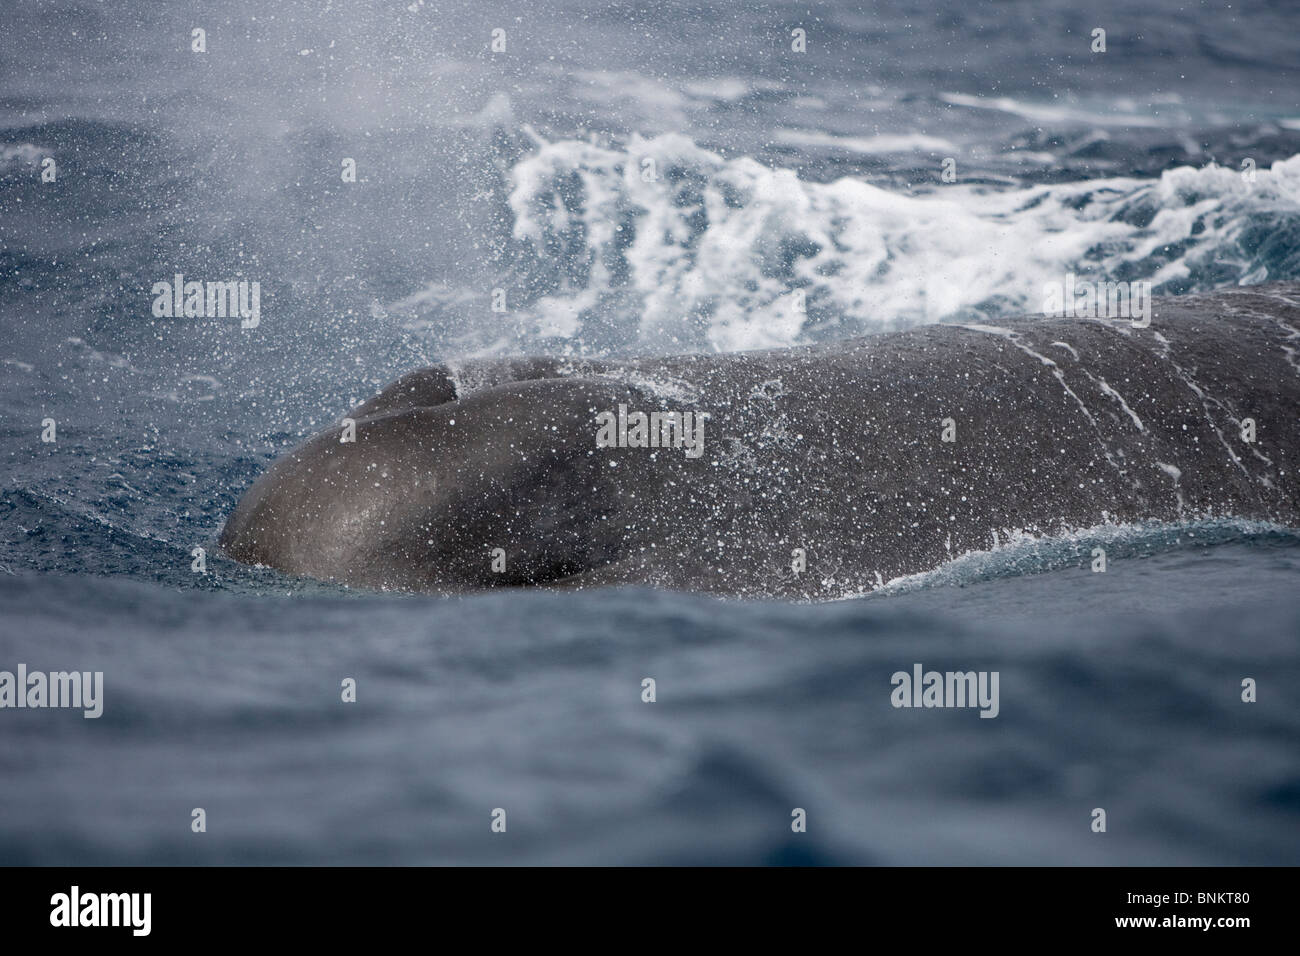 Sperm whale Cachalote Pottwal Physeter macrocephalus Pico Azores Portugal blowhole - Stock Image